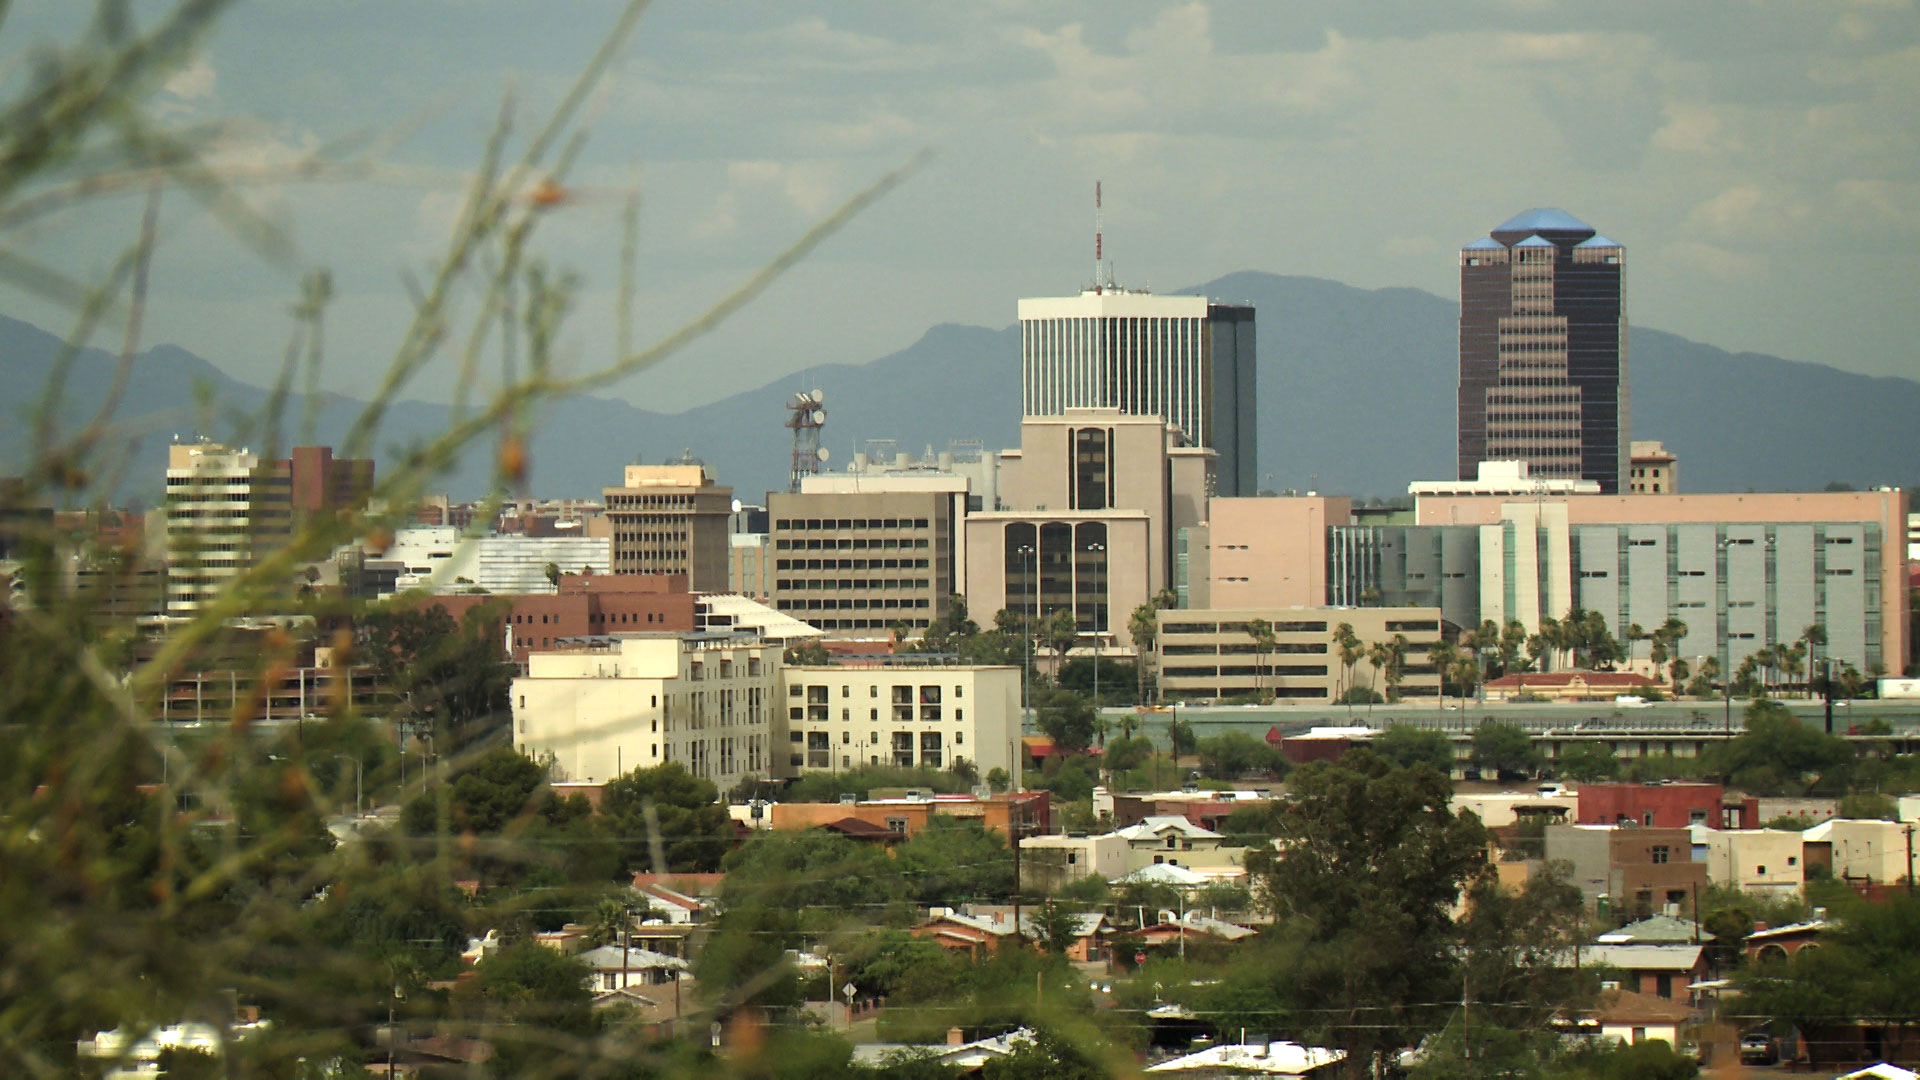 A view of downtown Tucson as seen from Tumamoc Hill.